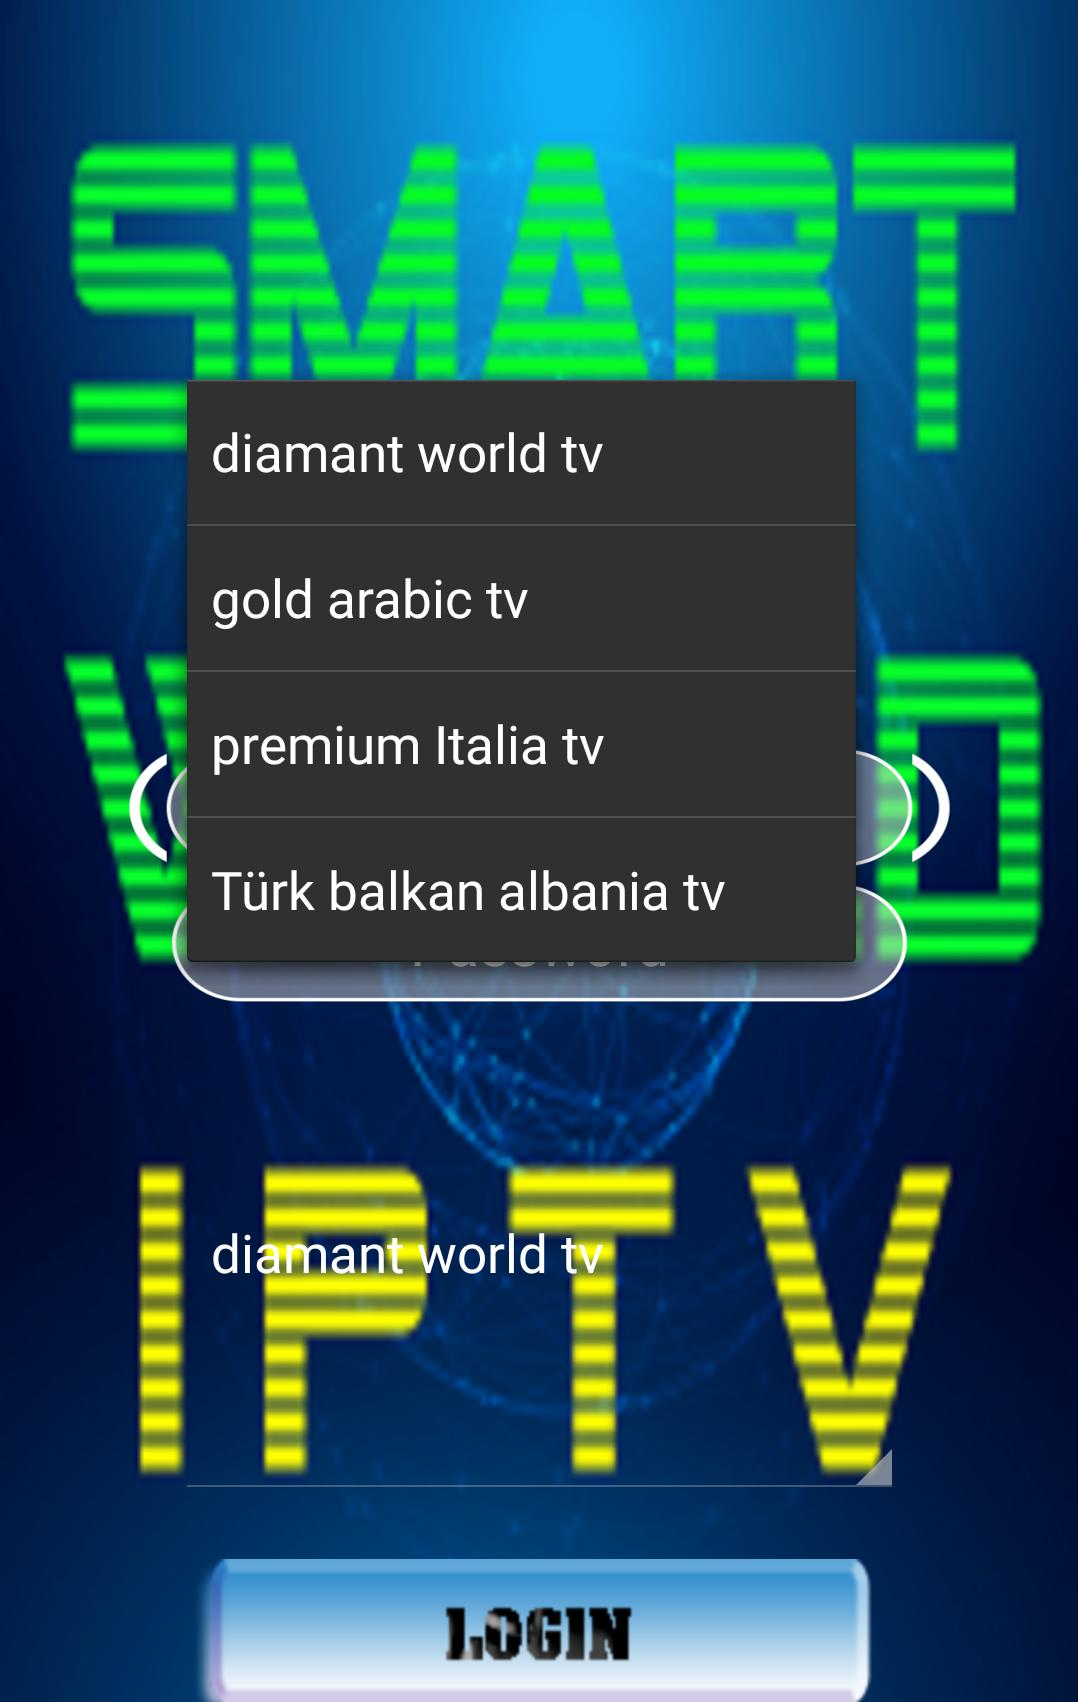 smart world iptv app riso for Android - APK Download